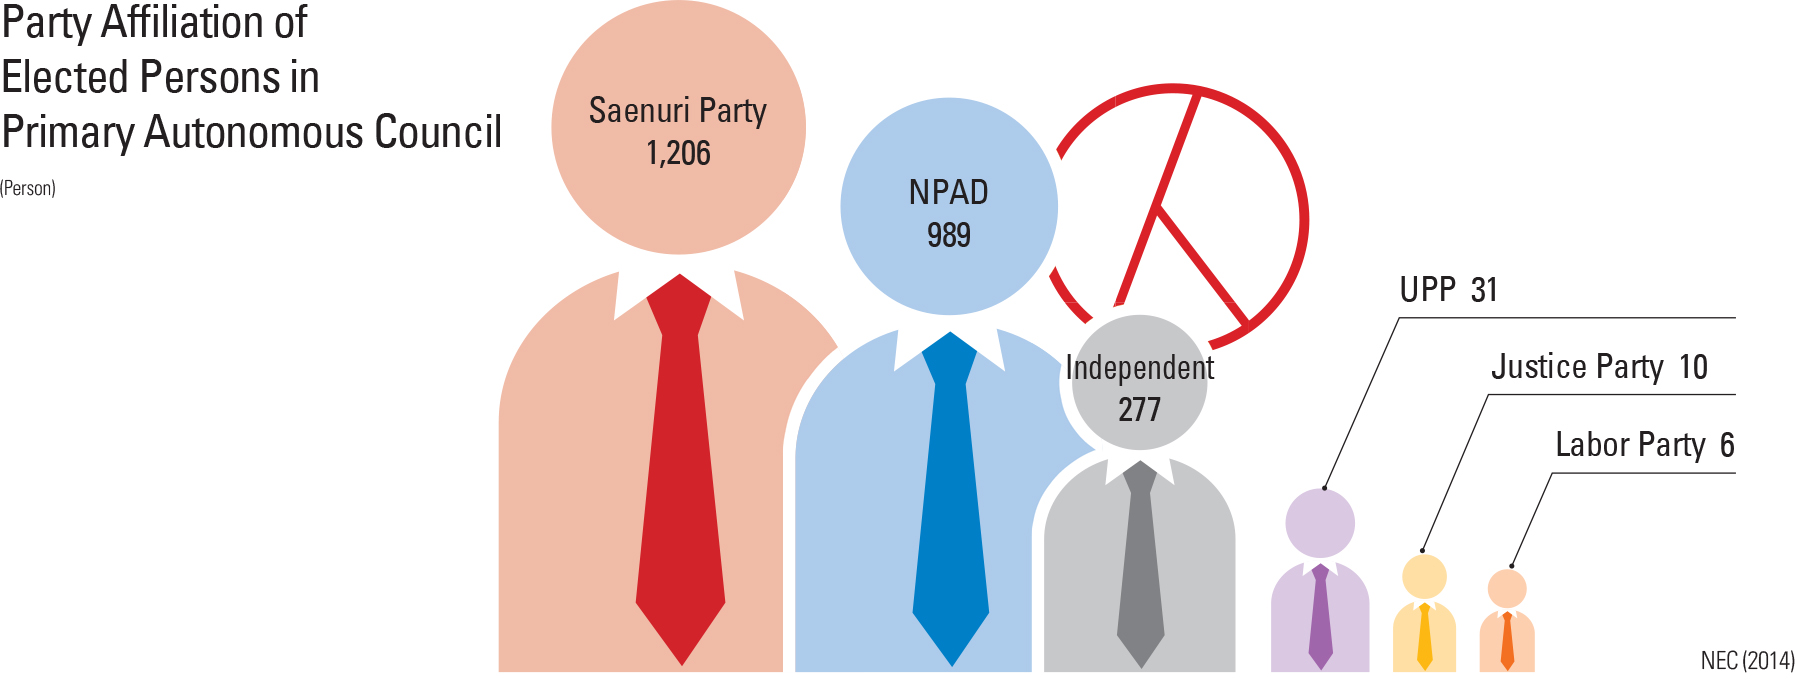 Party Affiliation of Elected Persons in Primary Autonomous Council